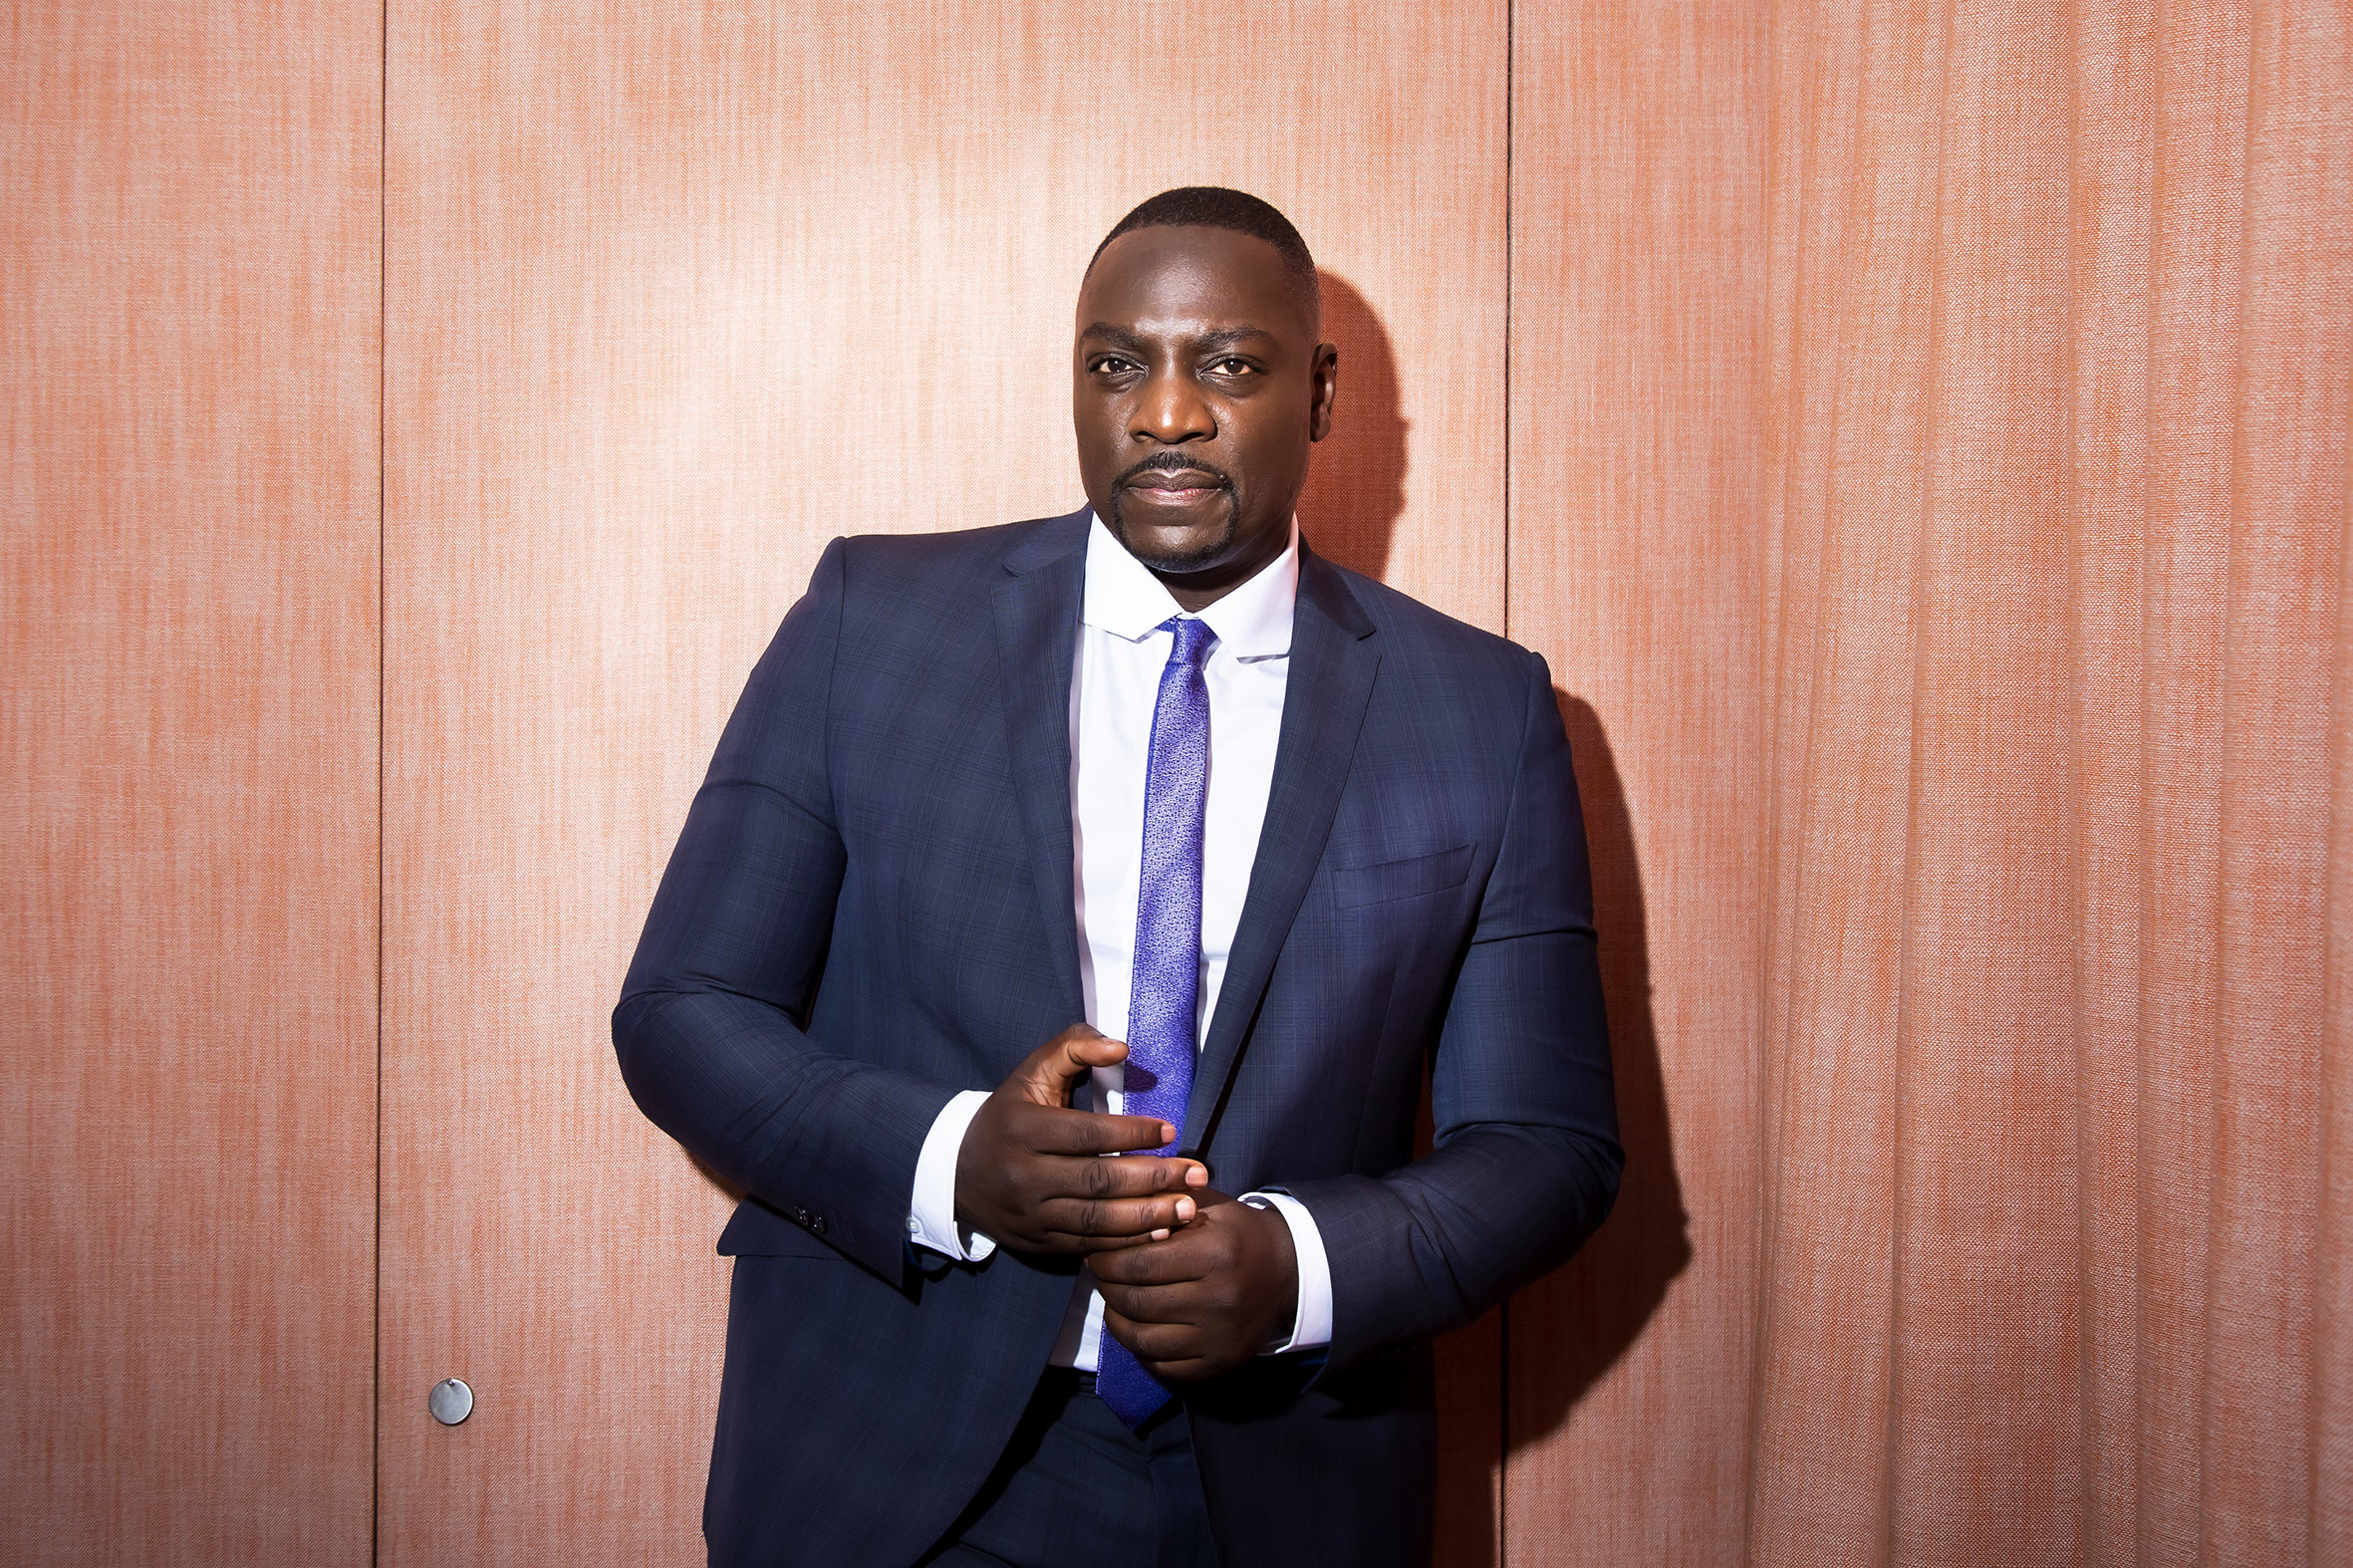 Adewale Akinnuoye-Agbaje, British actor, director, and former fashion model photographed for Time Out London, promoting his film 'Farming'.